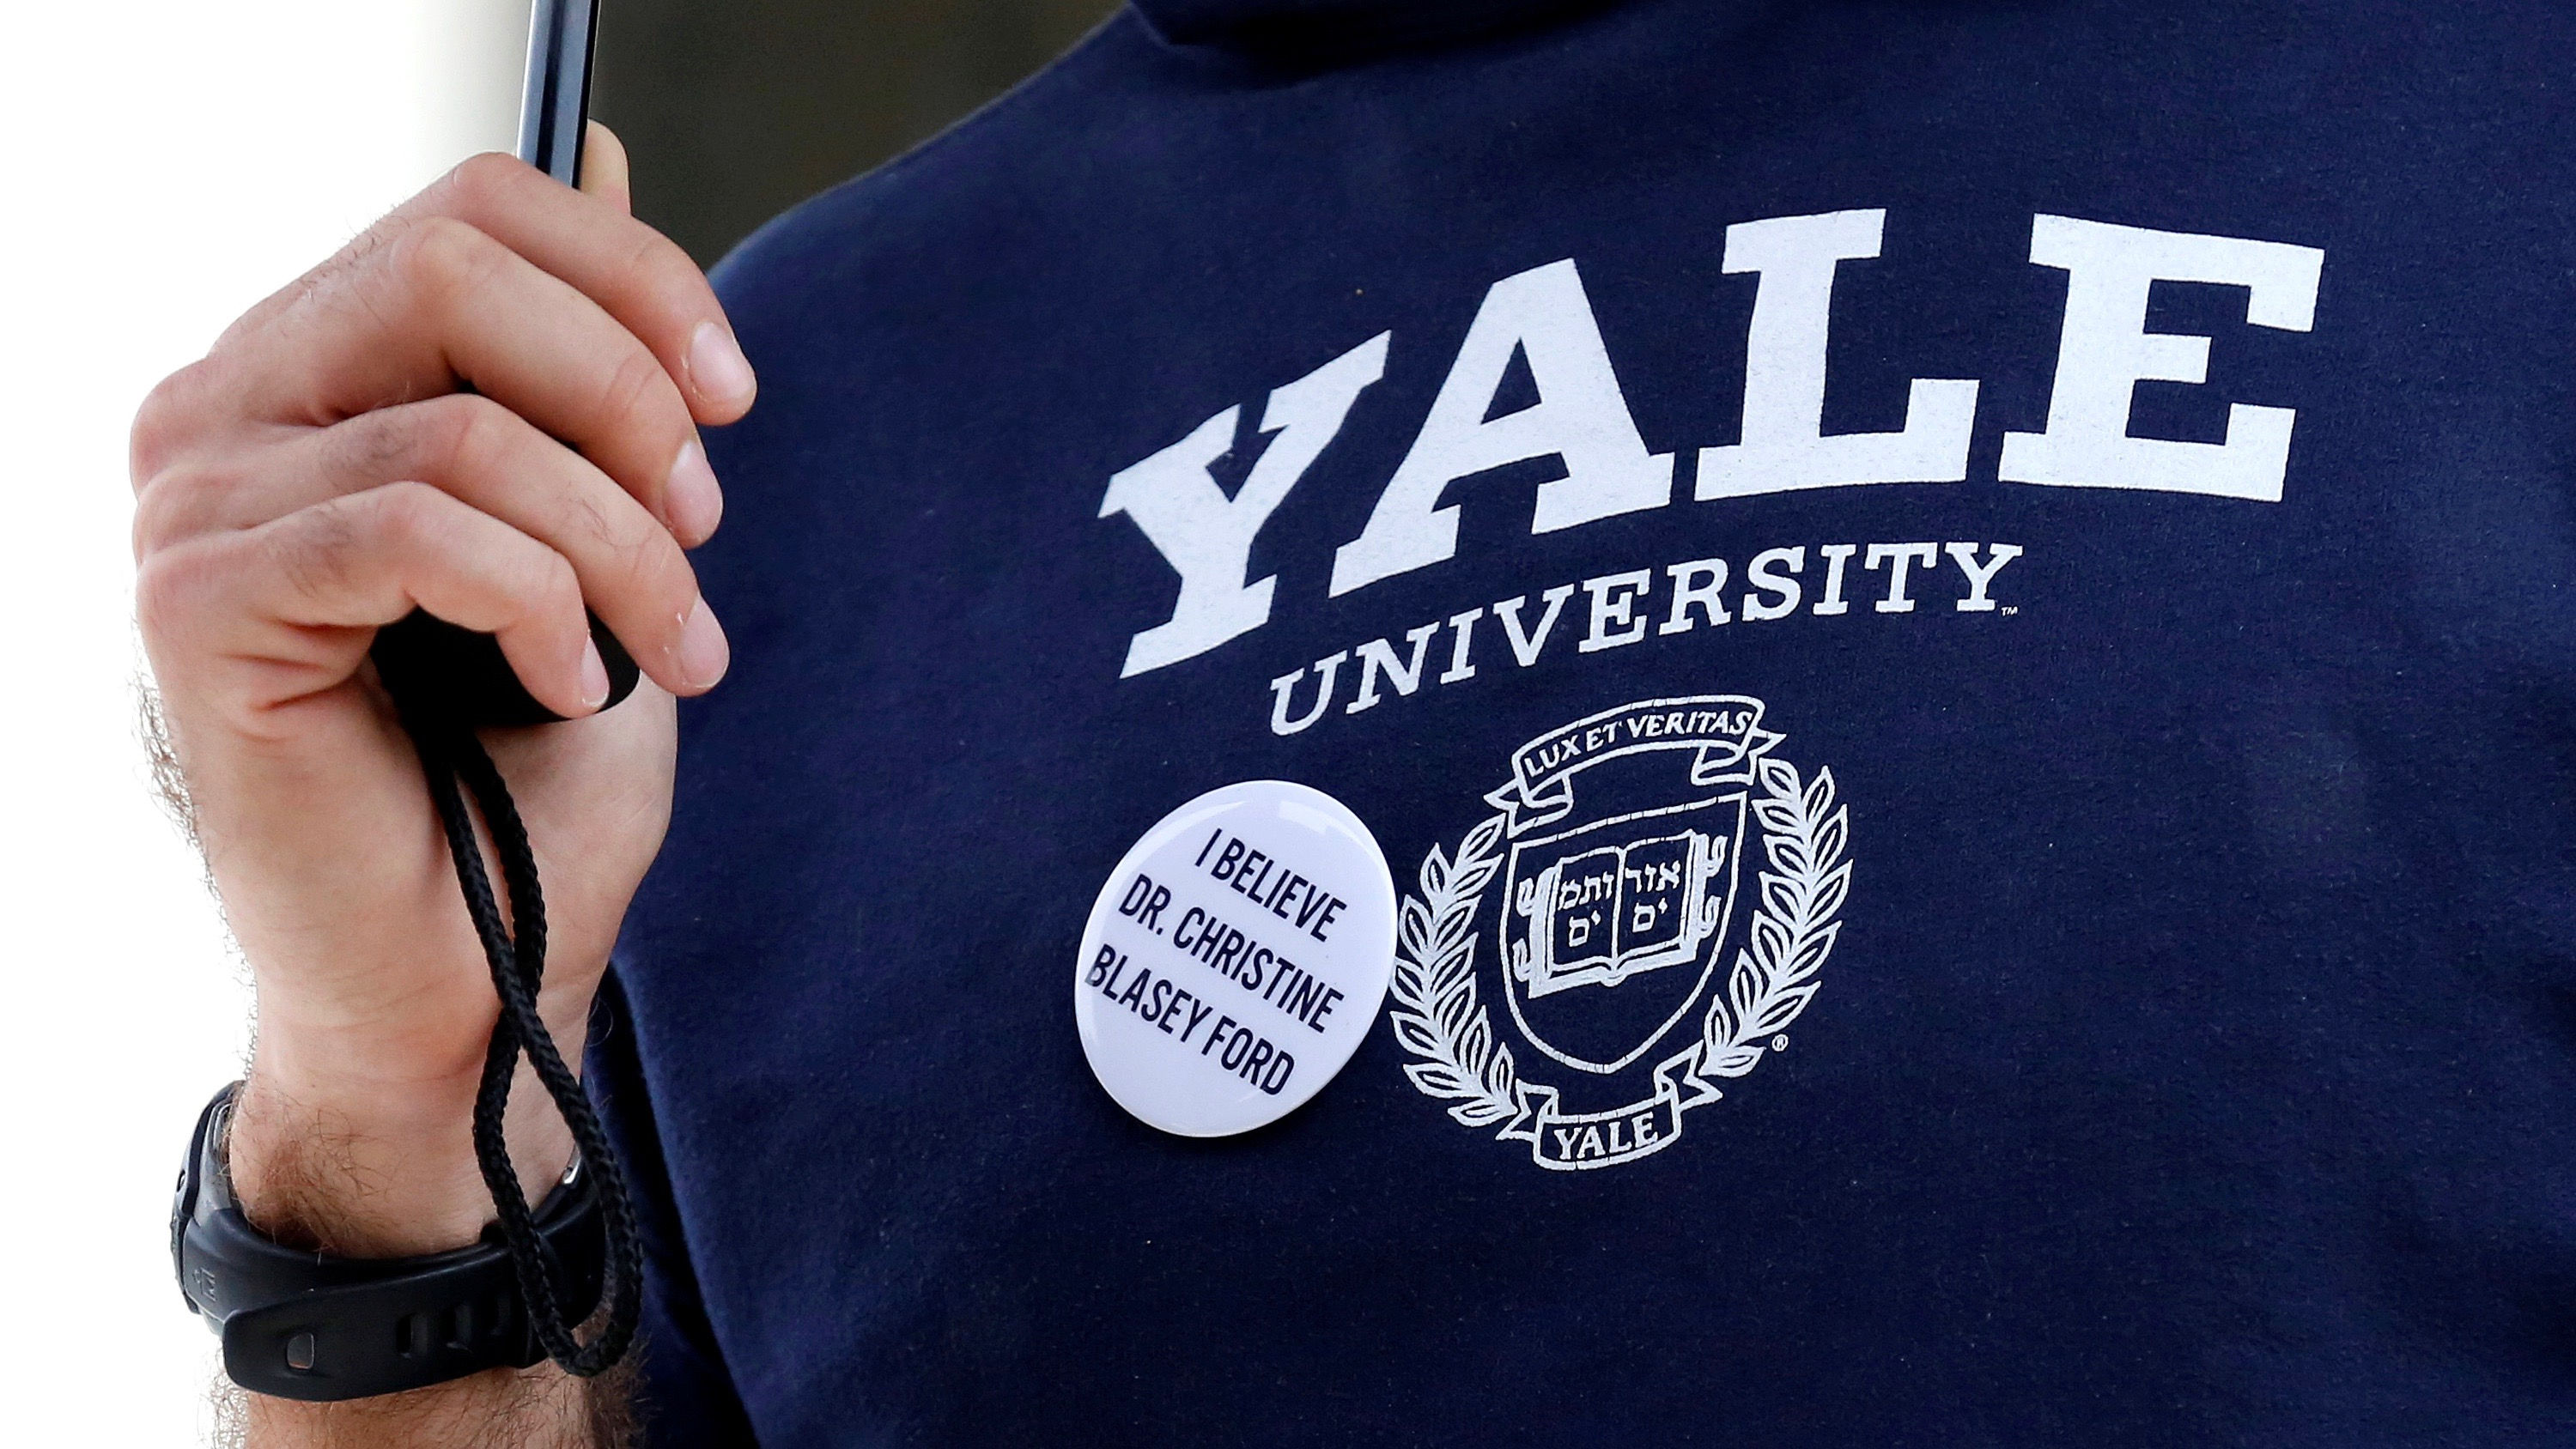 Brett Kavanaugh's nomination to the high court is causing problems at ivy league schools.